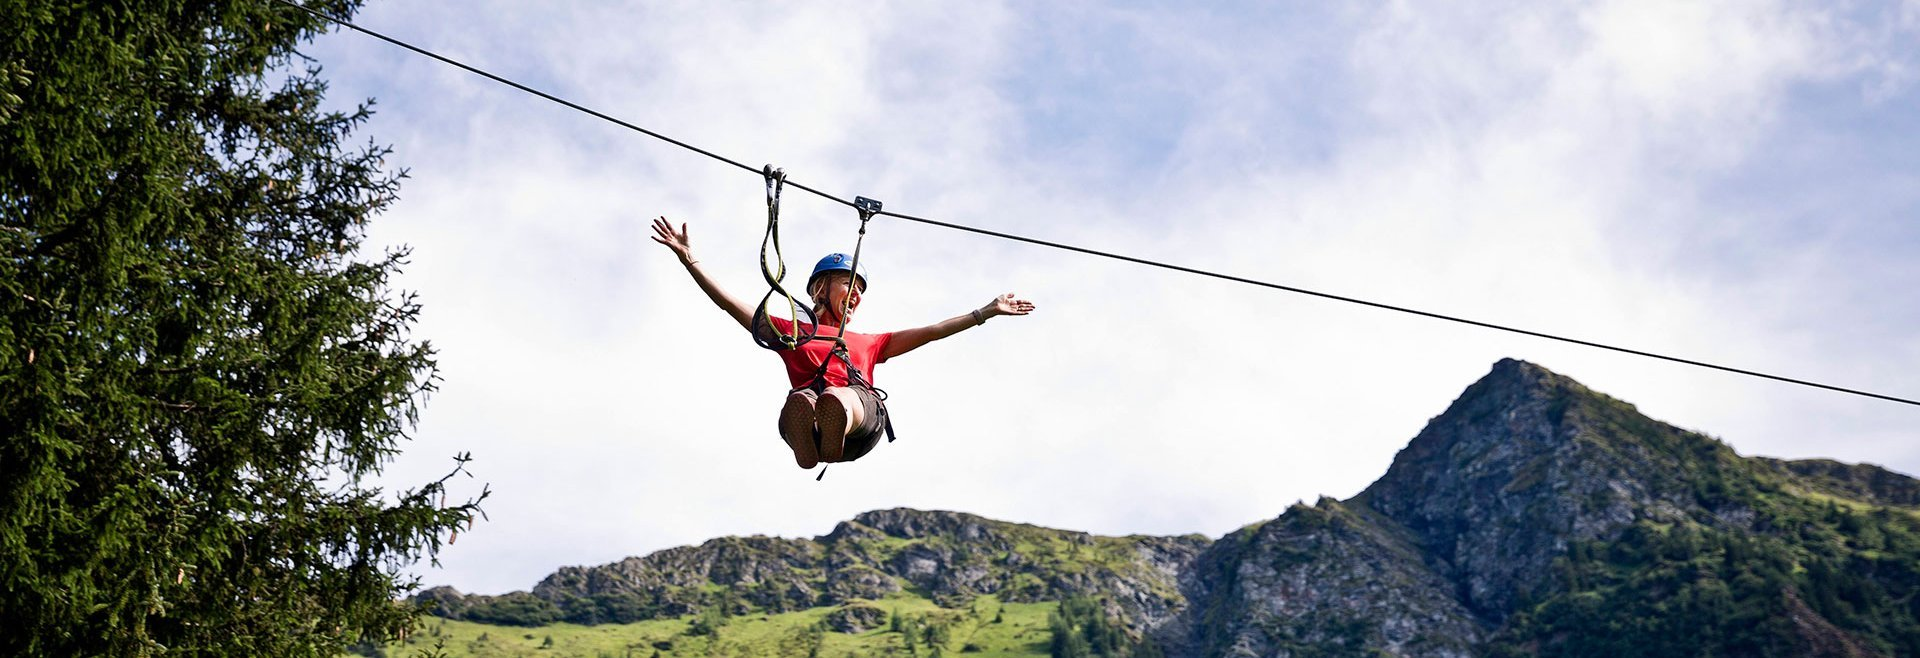 High-rope course Saalbach Hinterglemm